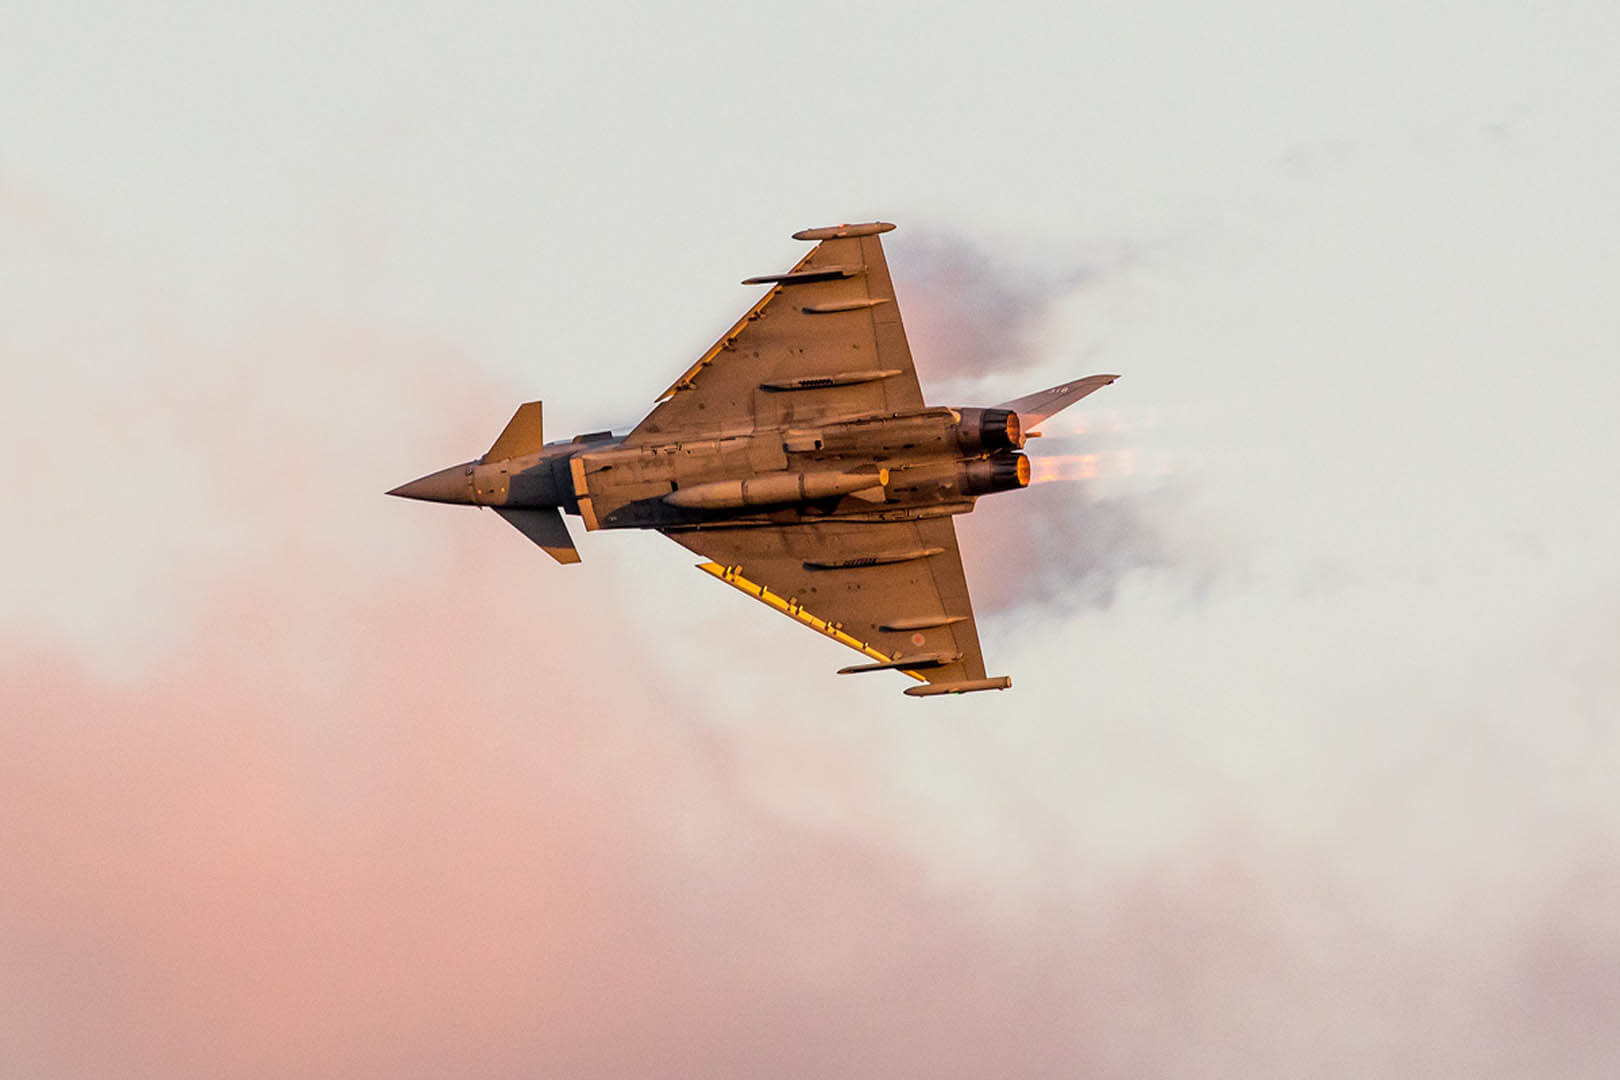 The famous typhoon roaring through the sun kissed sky for its dusk display